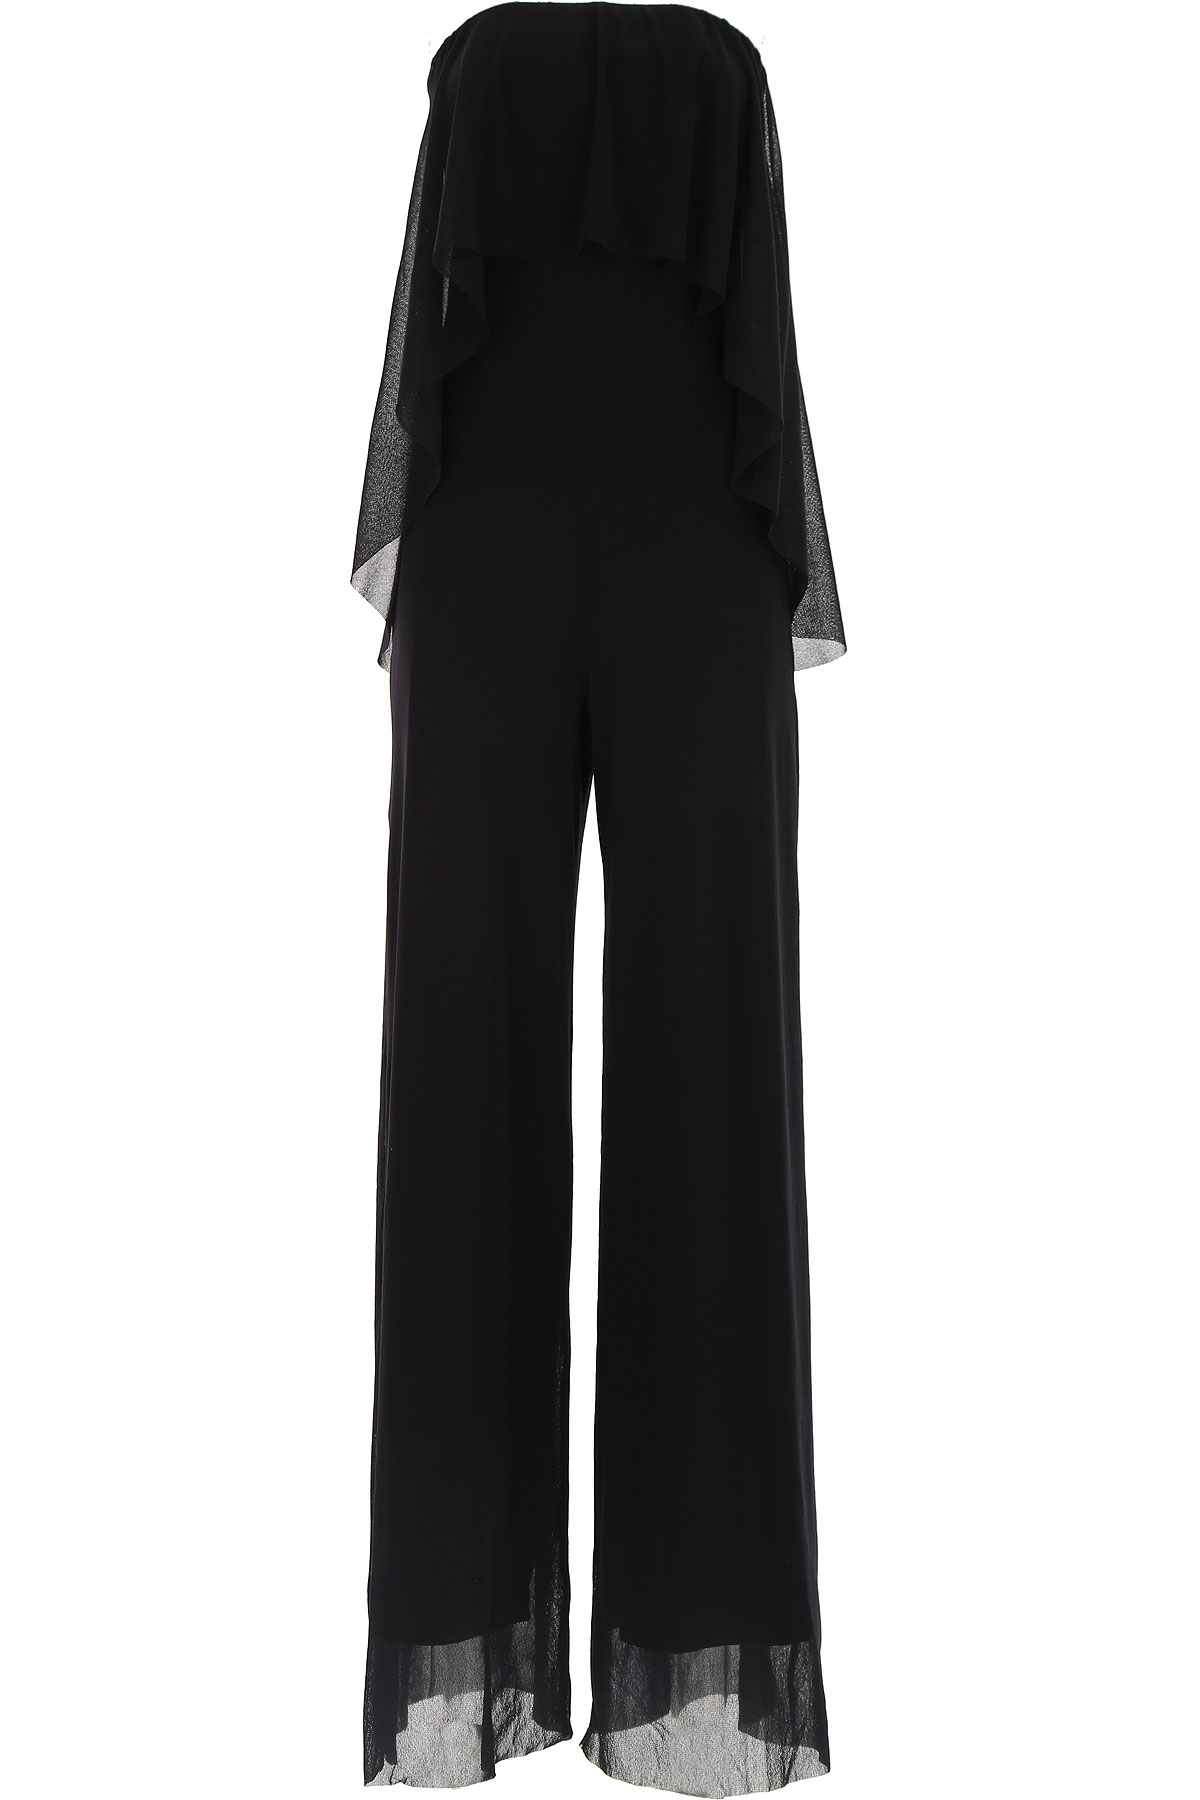 Image of Fuzzi Dress for Women, Evening Cocktail Party On Sale, Black, polyamide, 2017, 4 8